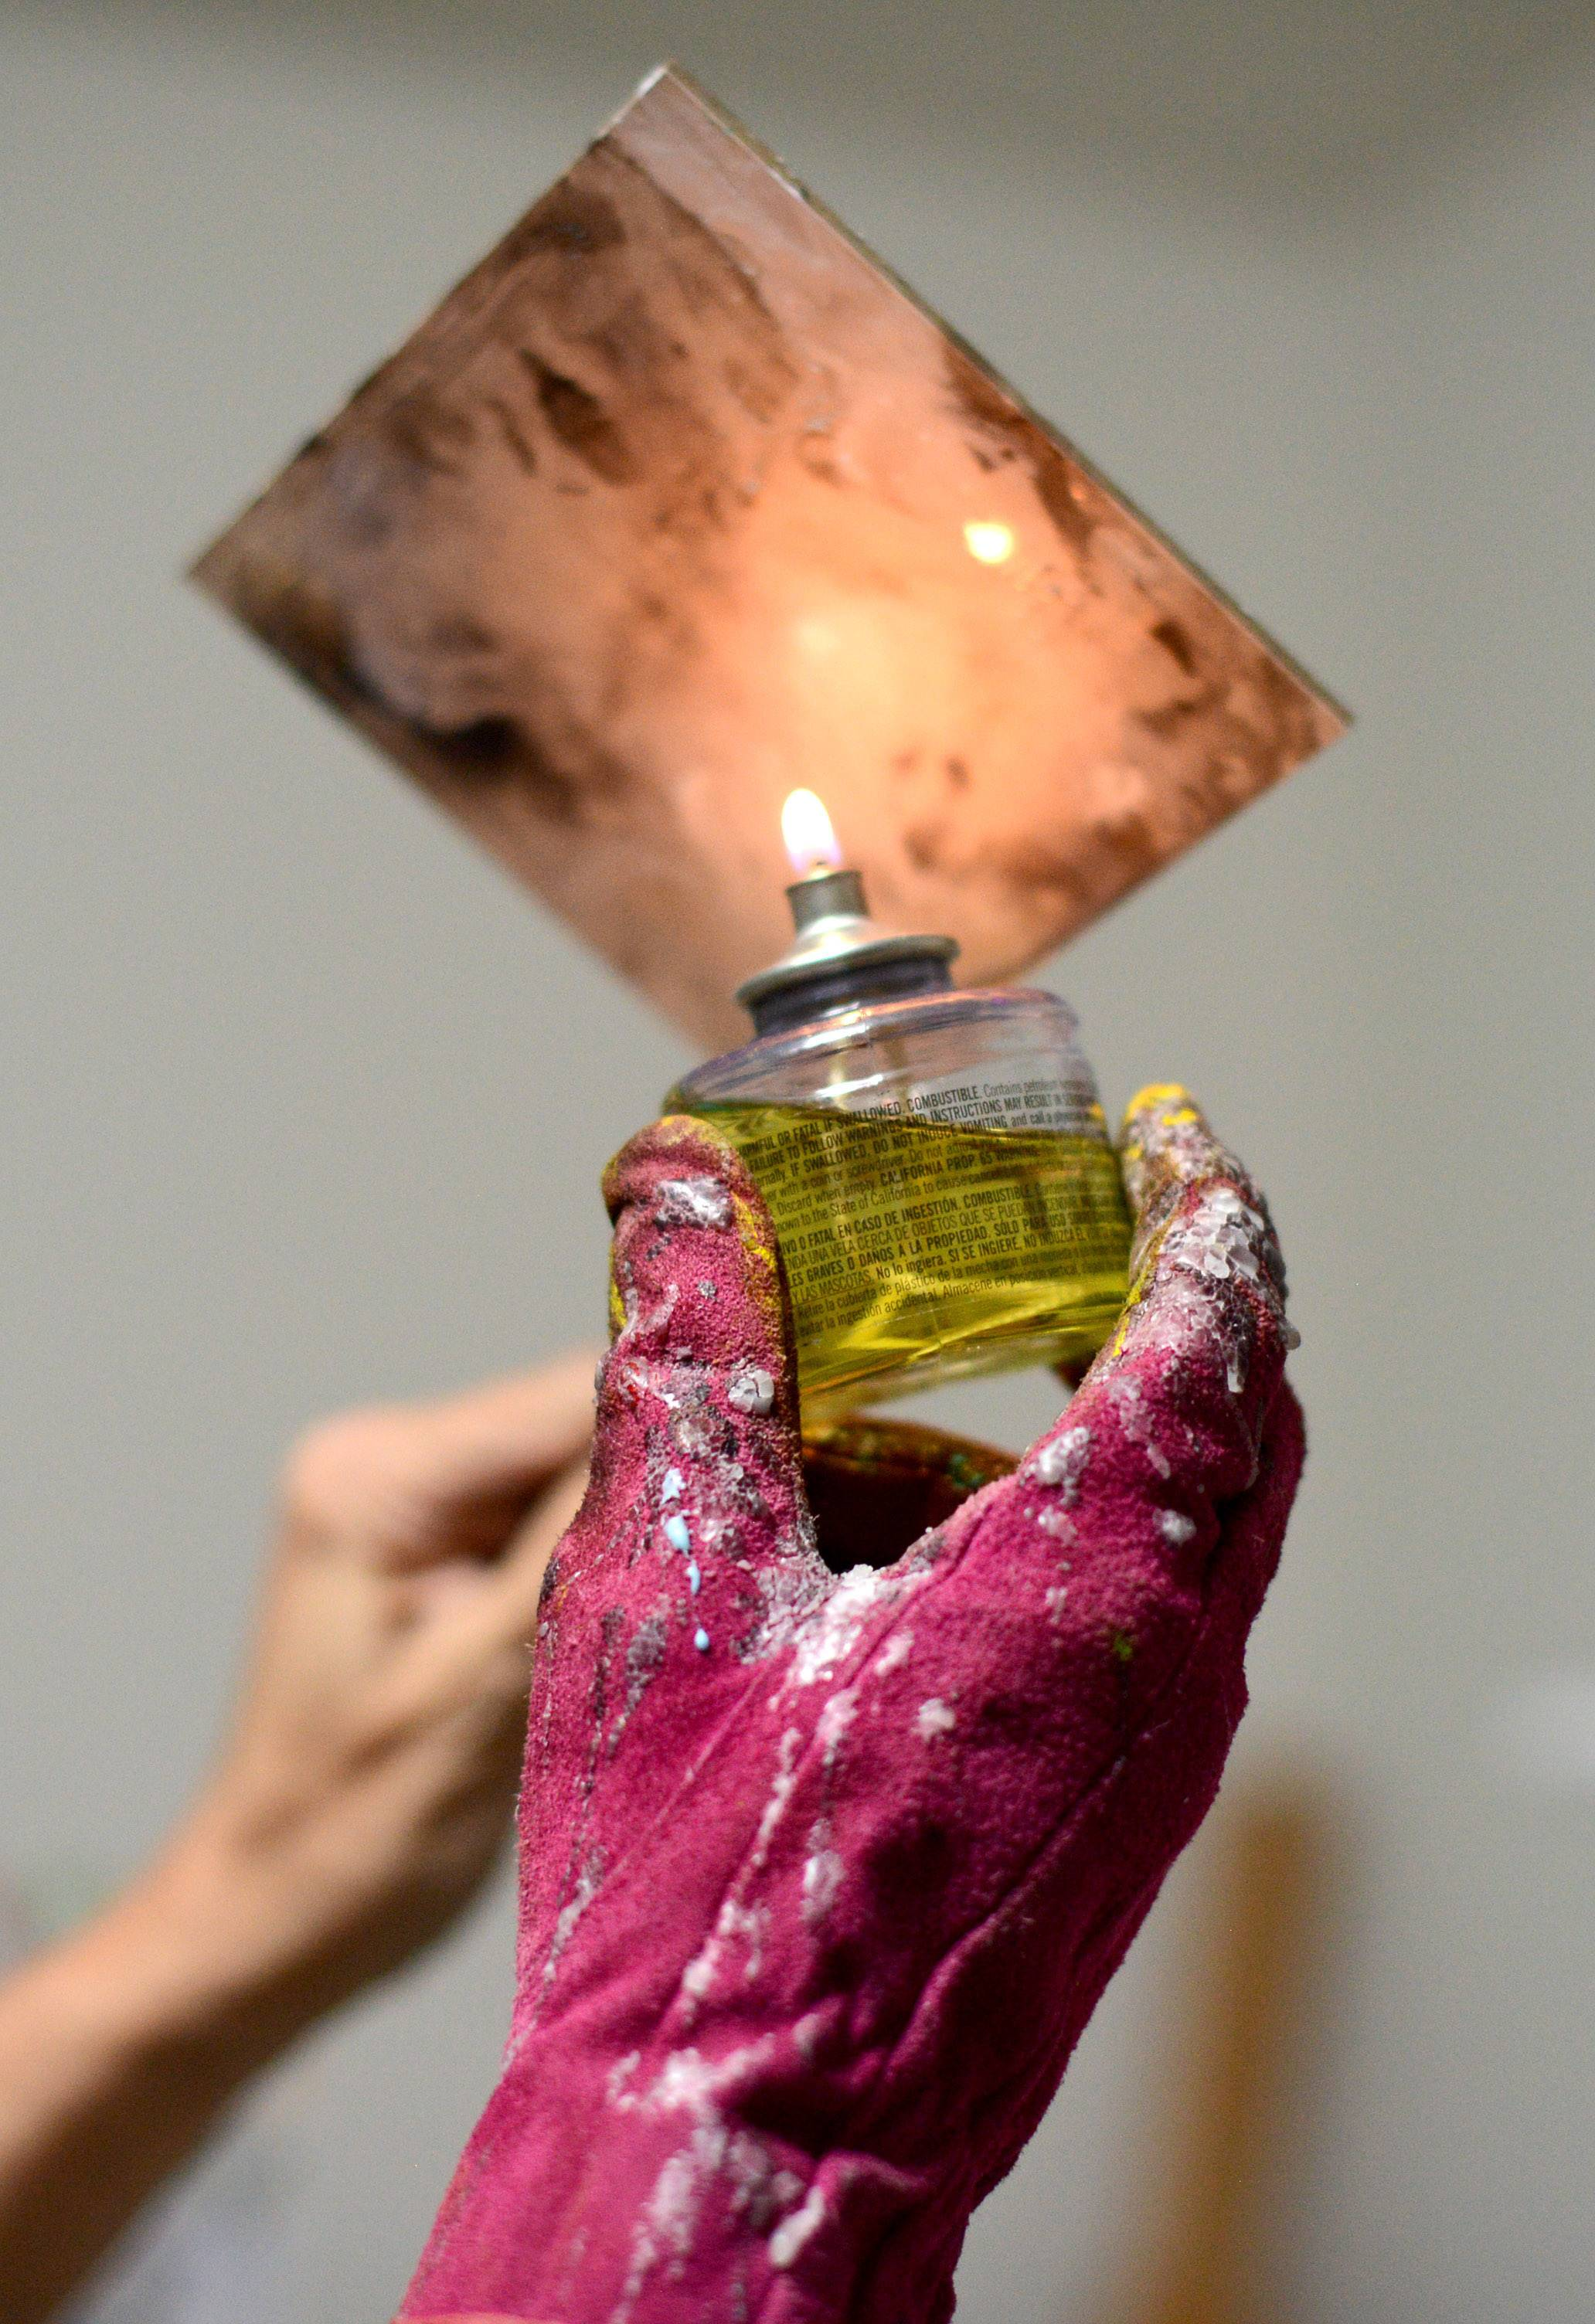 A tiki candle is applied to a tile canvas. Anne Ressman Zabinski uses a glove to protect her hand from flame and dripping wax when using a wax candle.